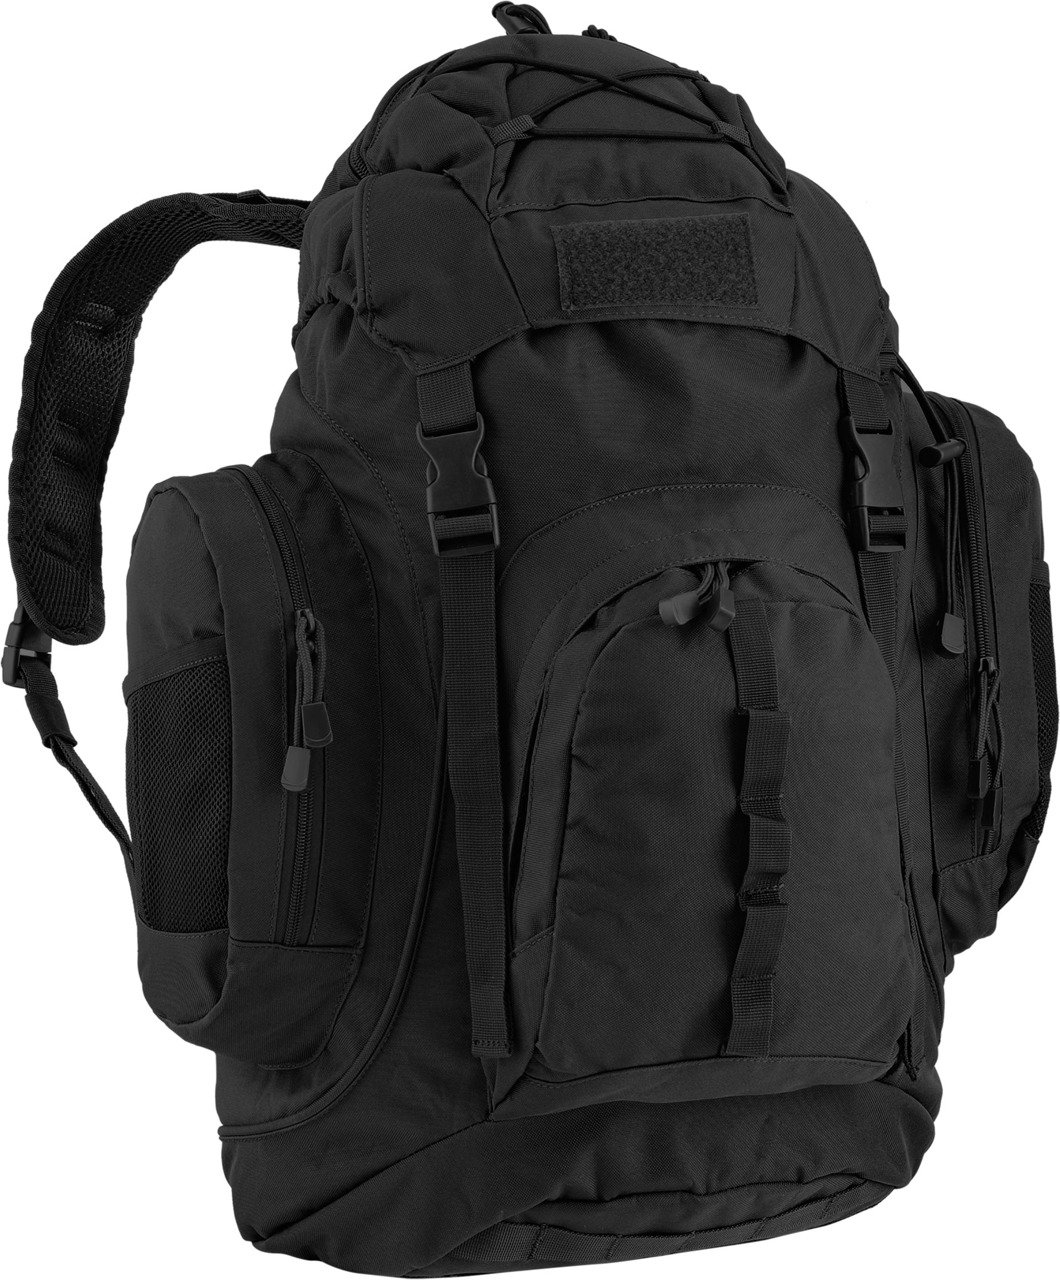 DEFCON 5 TACTICAL BACK PACK HYDRO COMPATIBLE BLACK DEFCON 5 TACTICAL BACK PACK HYDRO COMPATIBILE BLACK